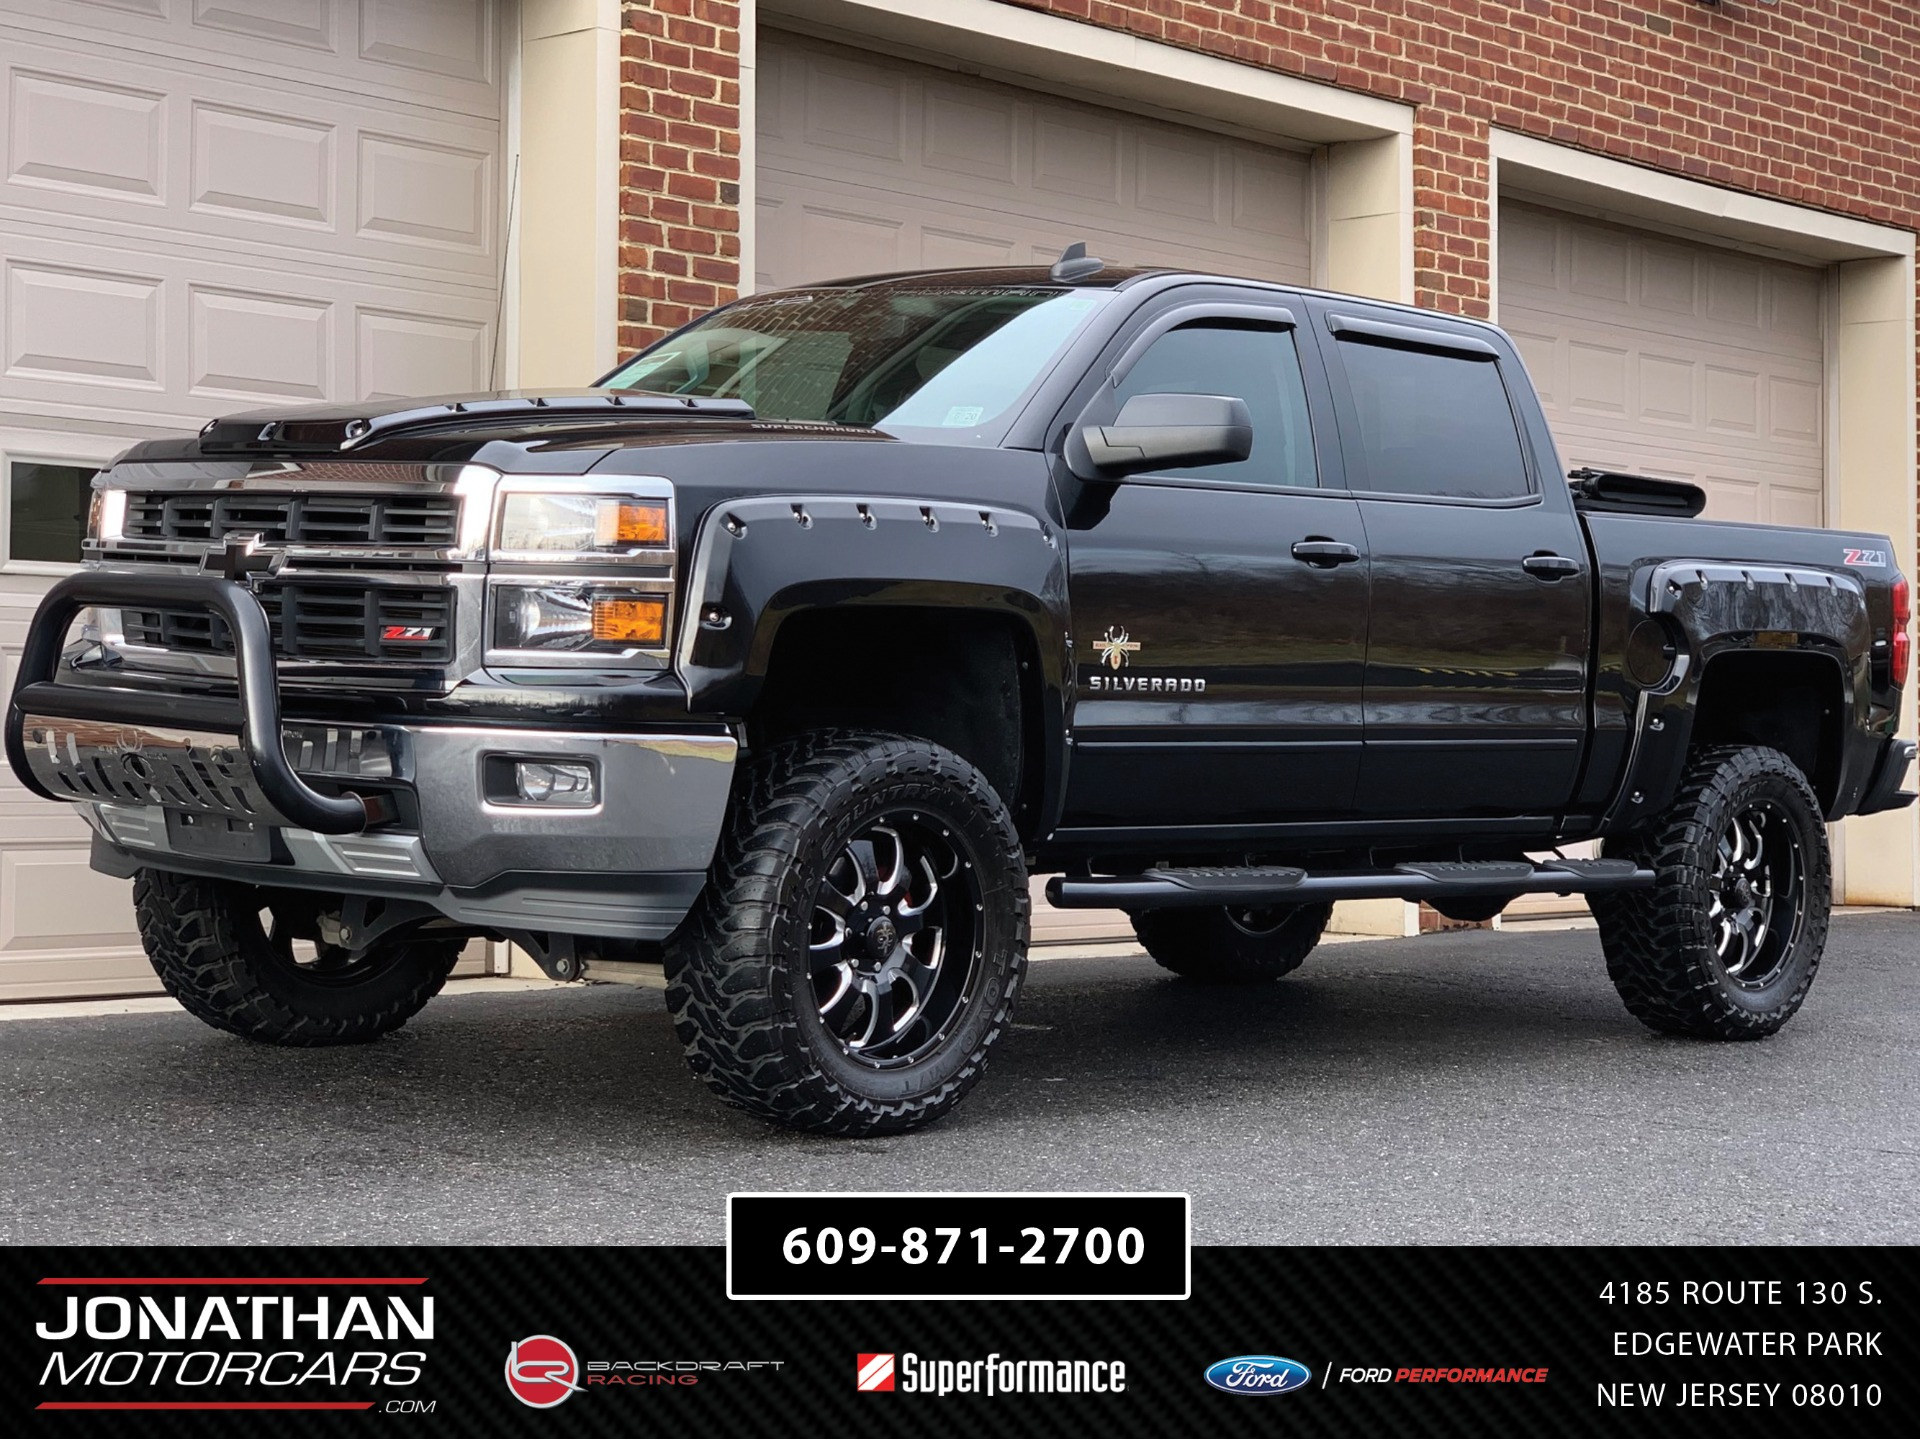 Used 2015 Chevrolet Silverado 1500 Southern Comfort Black Widow Edition Z71 | Edgewater Park, NJ